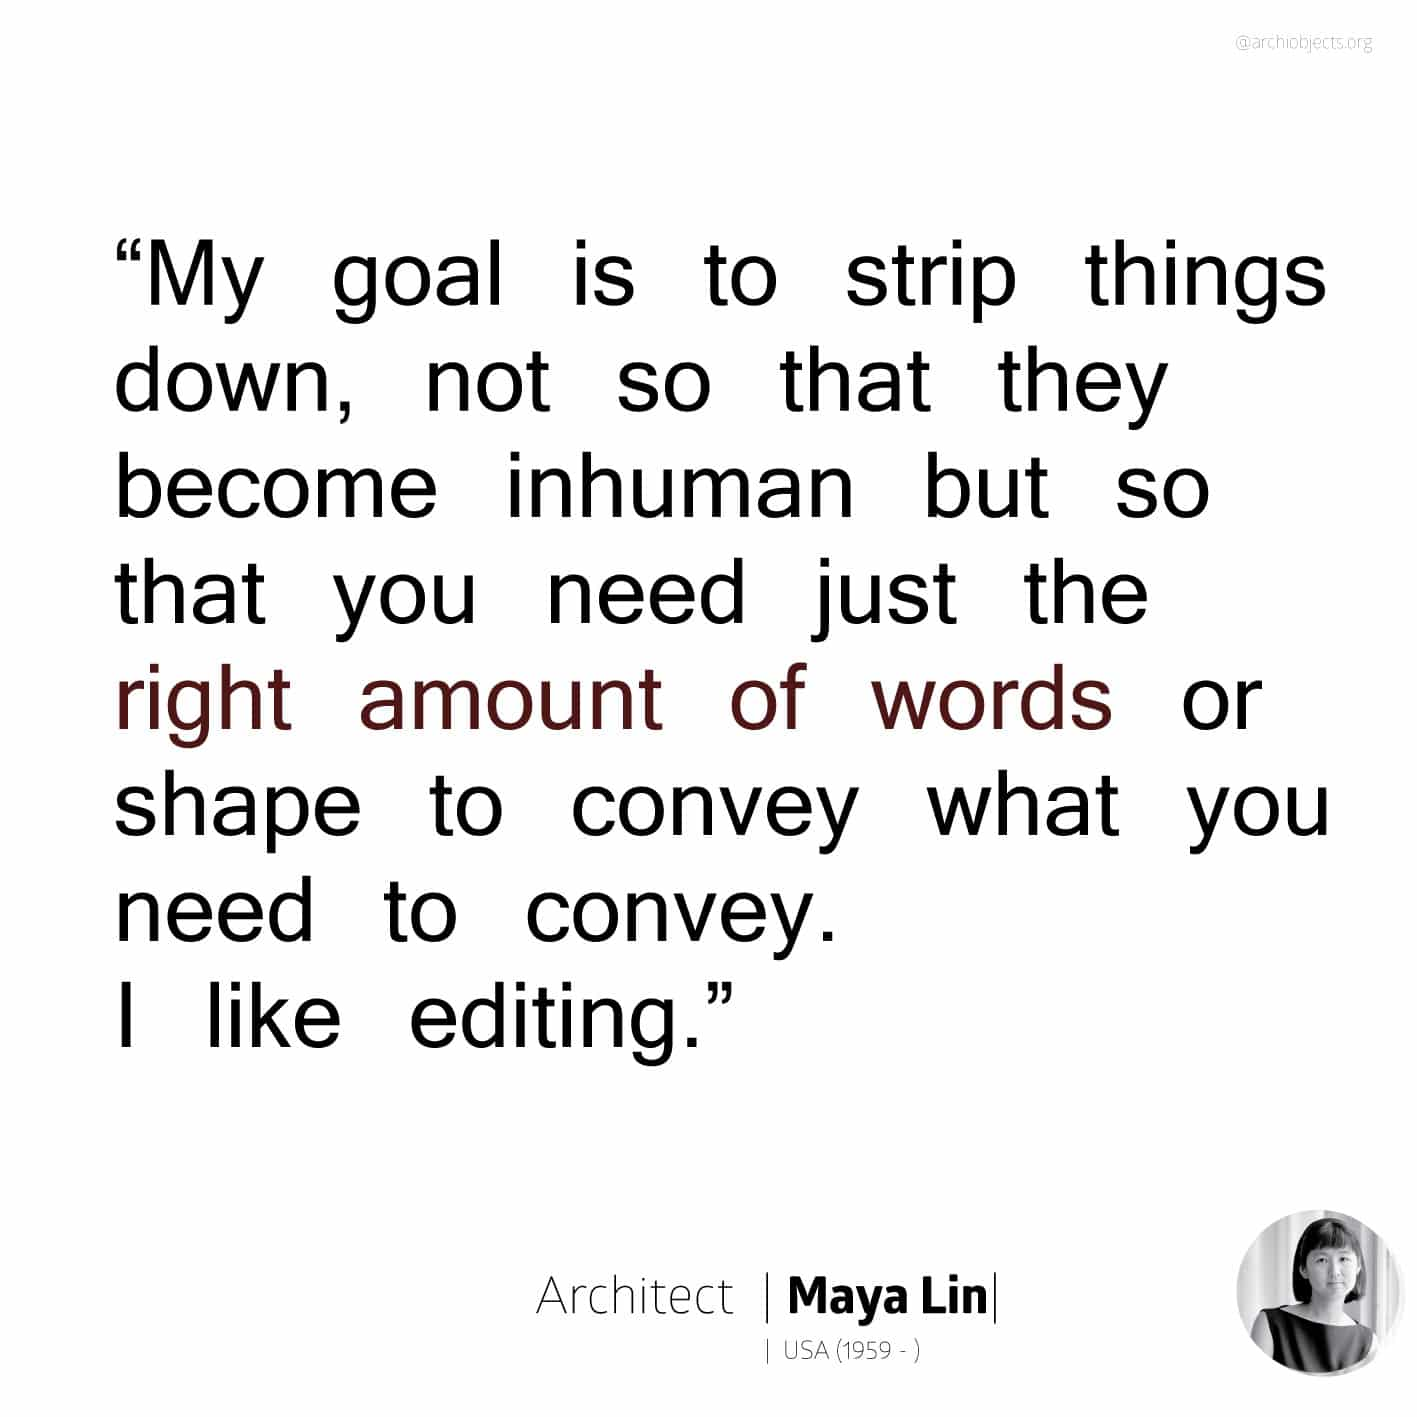 maya lin Architectural Quotes - Worth spreading Architects' voice